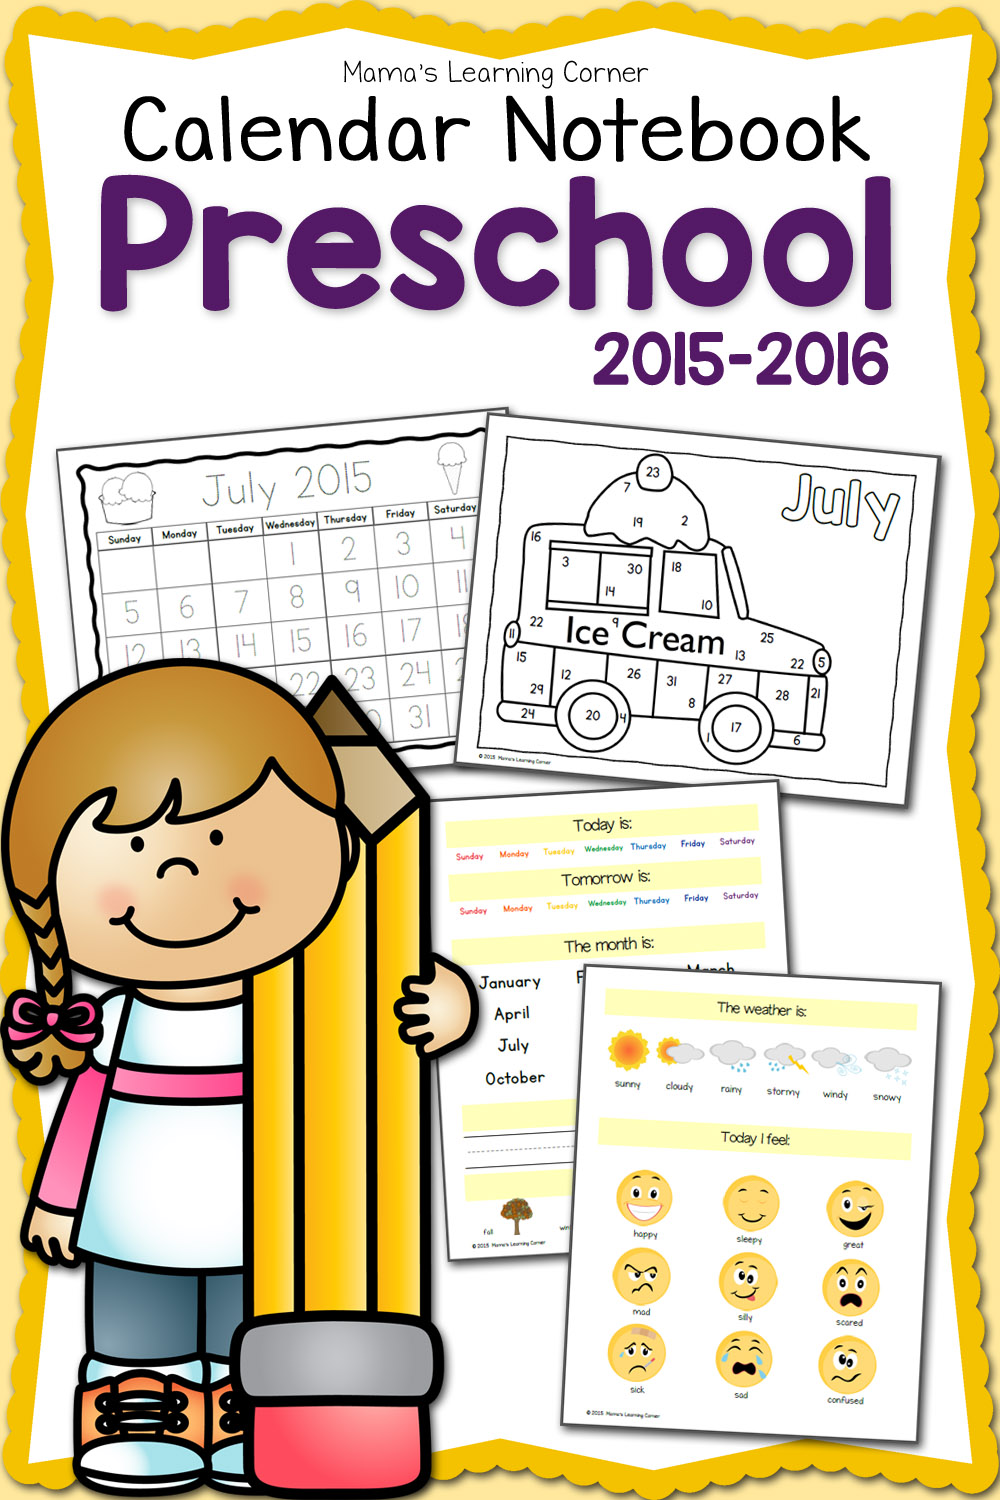 Free printable 2015 2016 Preschool Calendar Learning Notebook